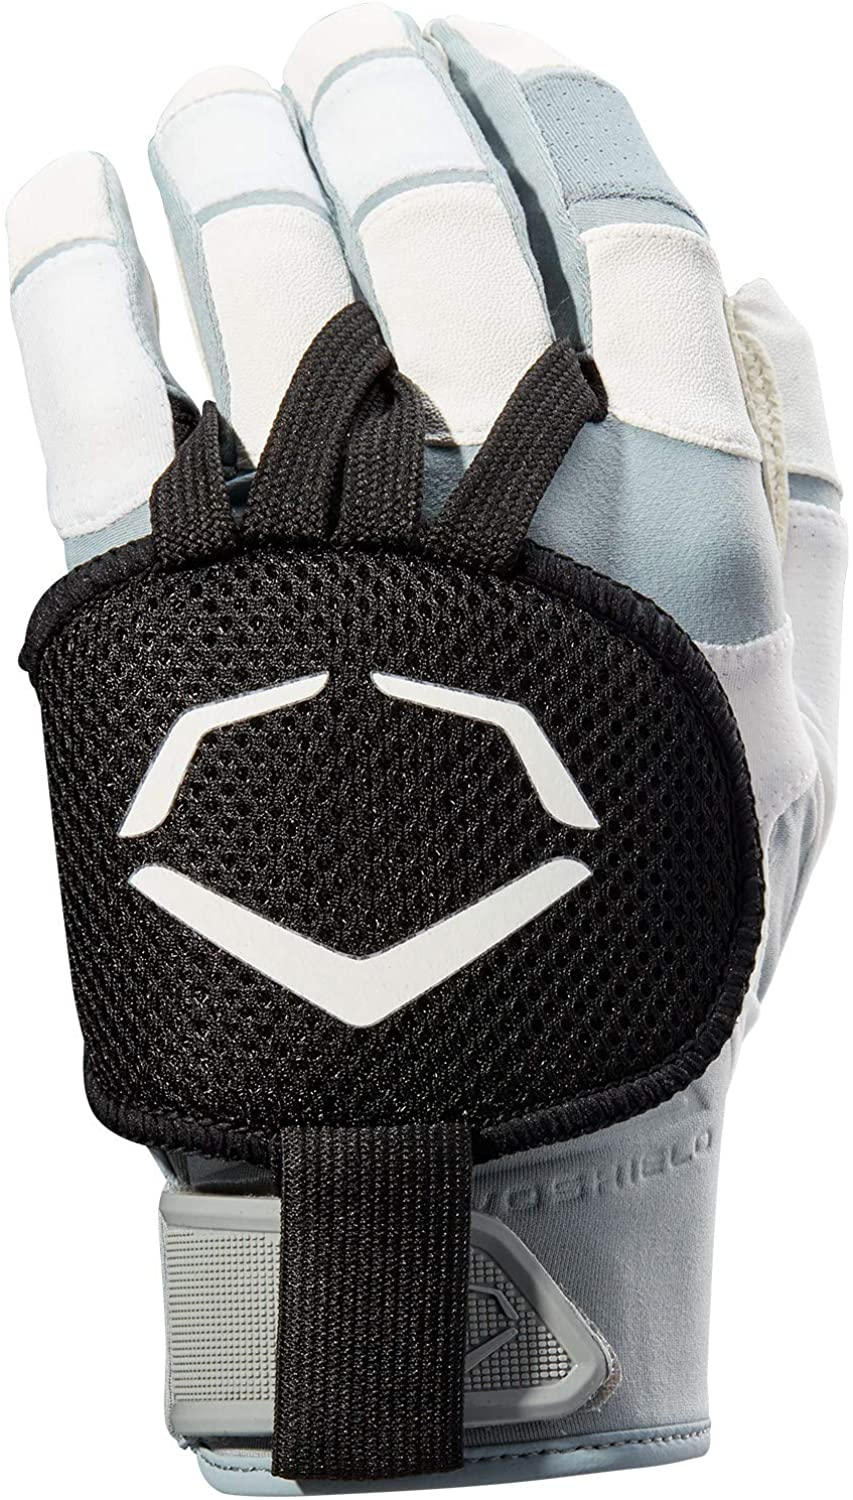 EvoShield Gel-to-Shell Hand Guard, Black - Right-Handed Hitter : Clothing